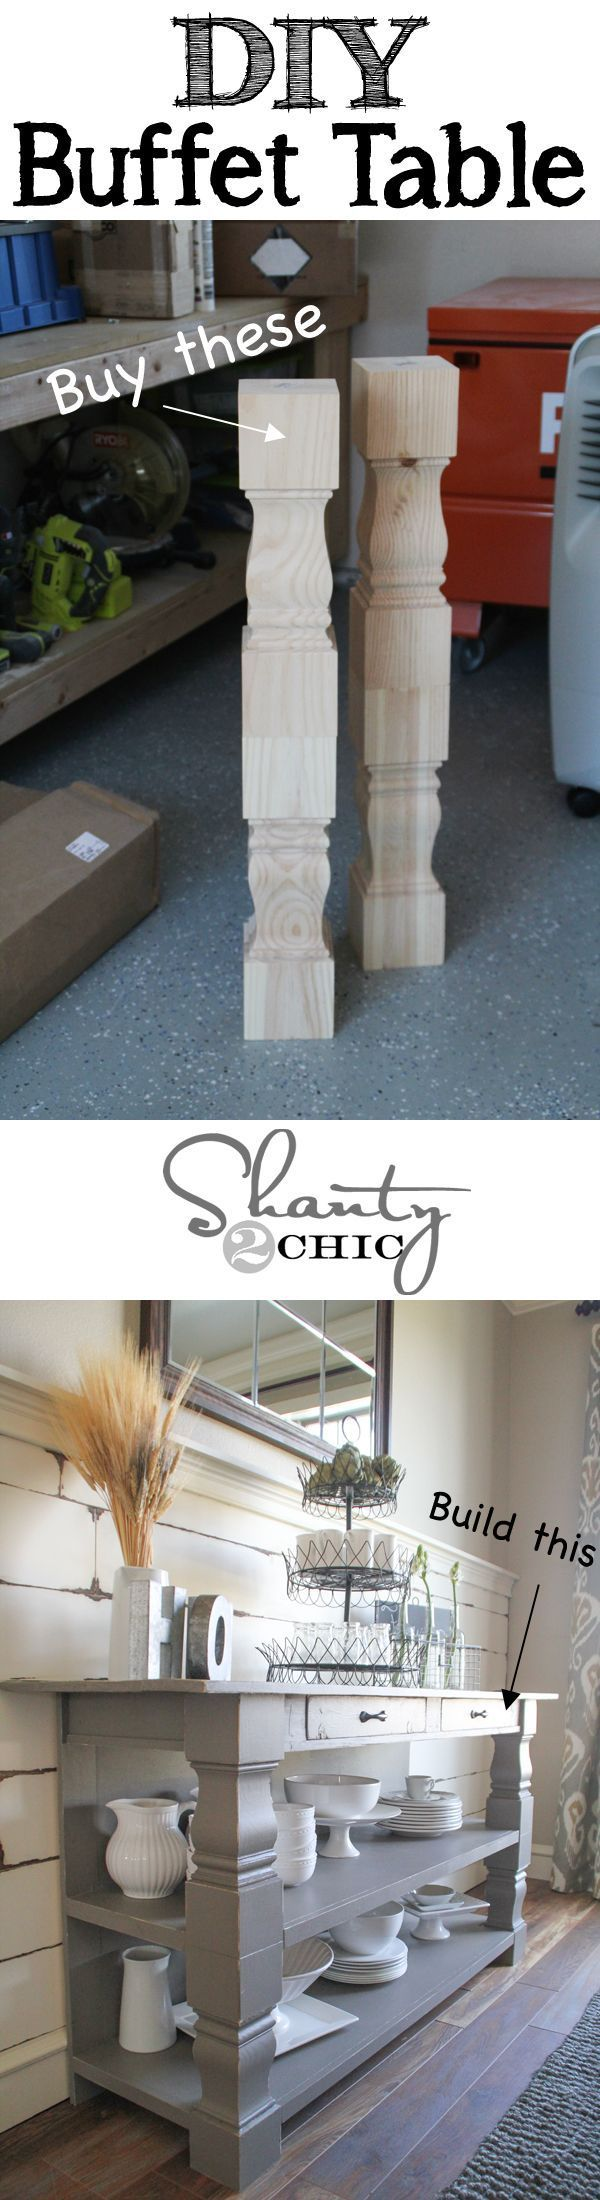 FREE and Easy DIY Furniture Project Plan from Shanty2Chic: Learn How to Build a Buffet Table // http://Shanty-2-Chic.com